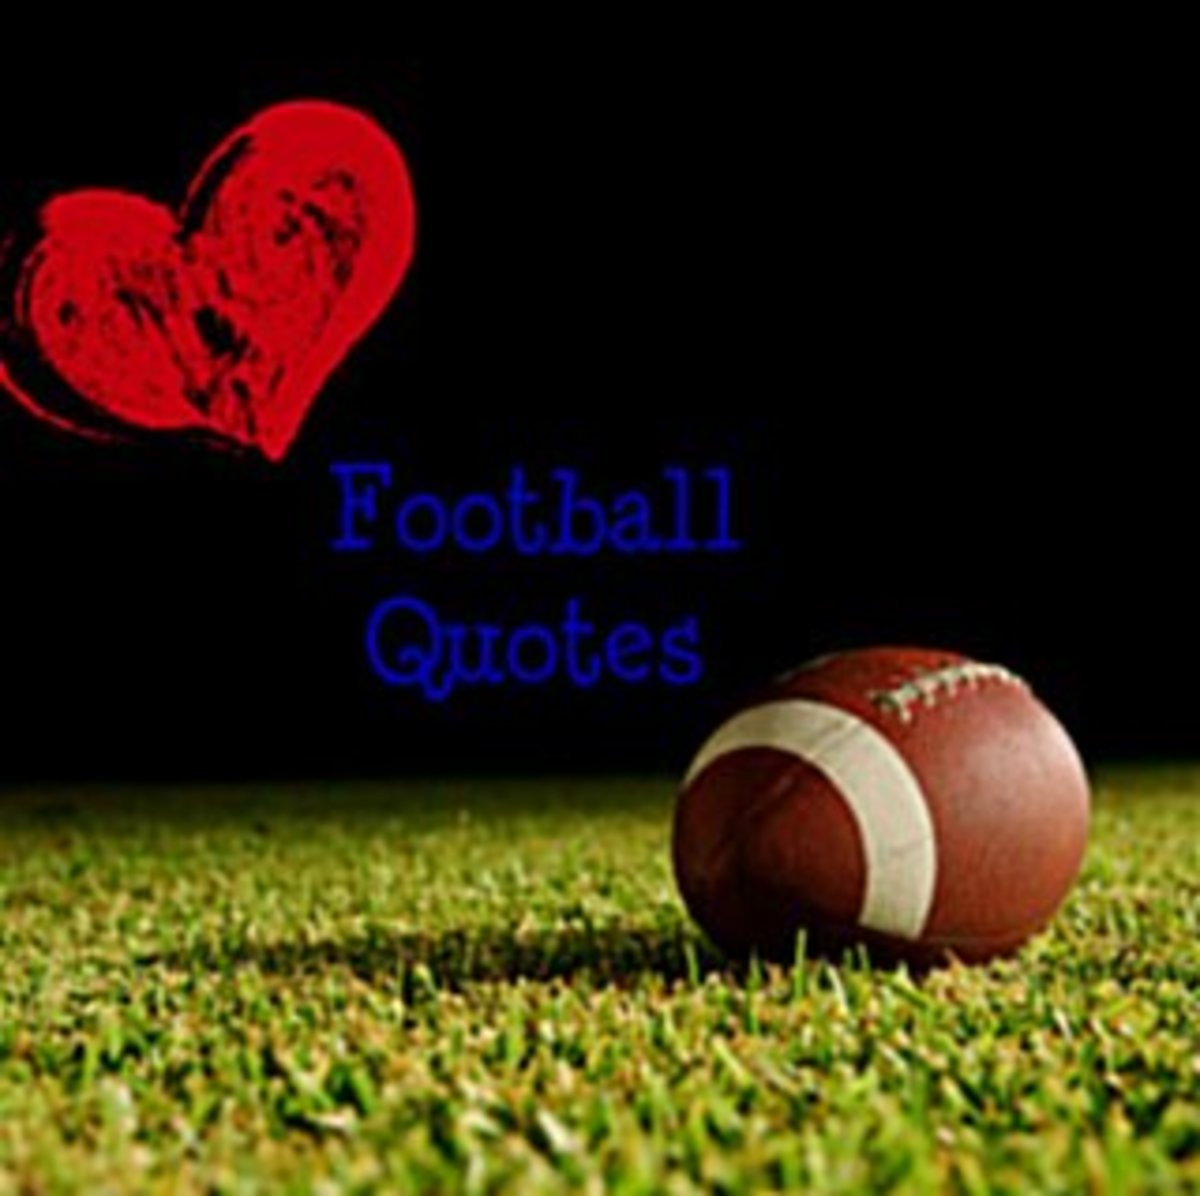 Football Coach Quote Wallpaper Football Quotes Football Players In The Background Wth